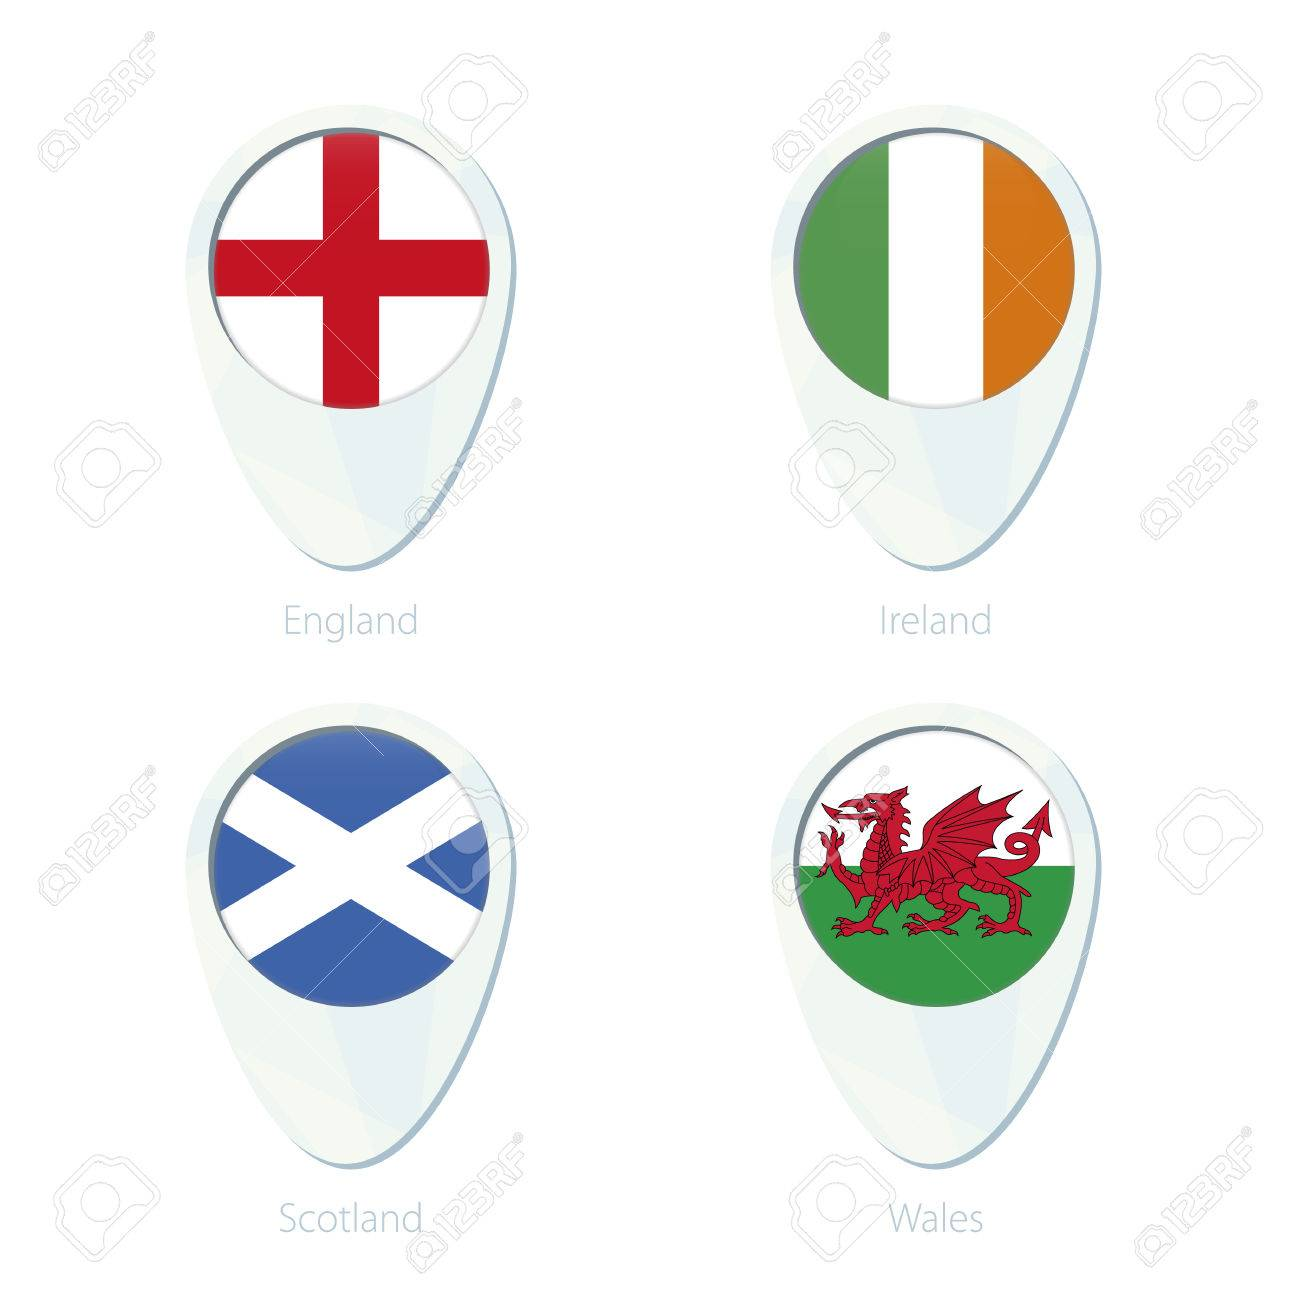 Map Of England And Ireland And Scotland And Wales.England Ireland Scotland Wales Flag Location Map Pin Icon